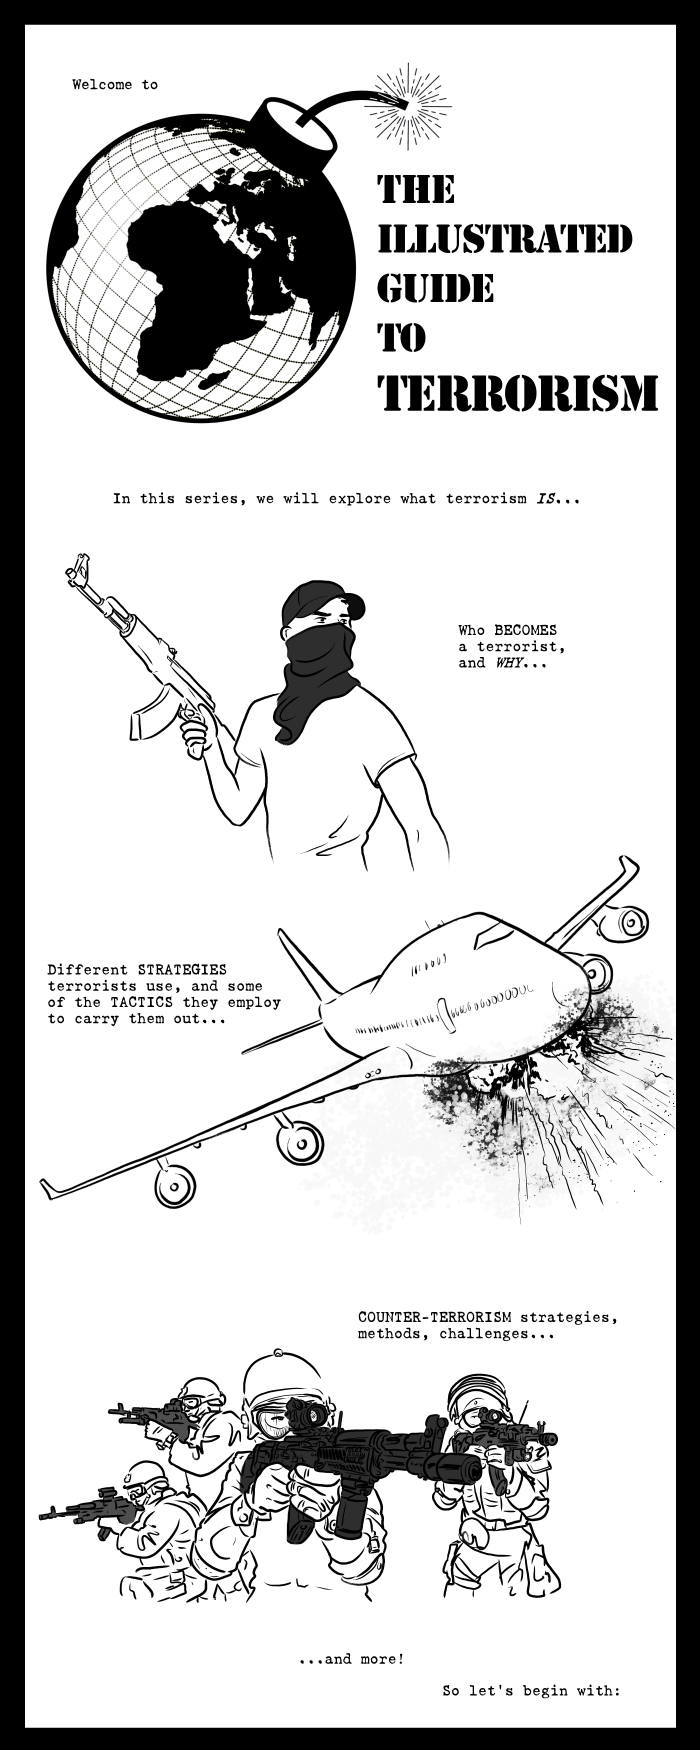 Welcome to the Illustrated Guide to Terrorism. In this series, we will explore what terrorism is - who becomes a terrorist, and why - different strategies and tactics terrorists use - counterterrorism strategies and challenges - and much more!